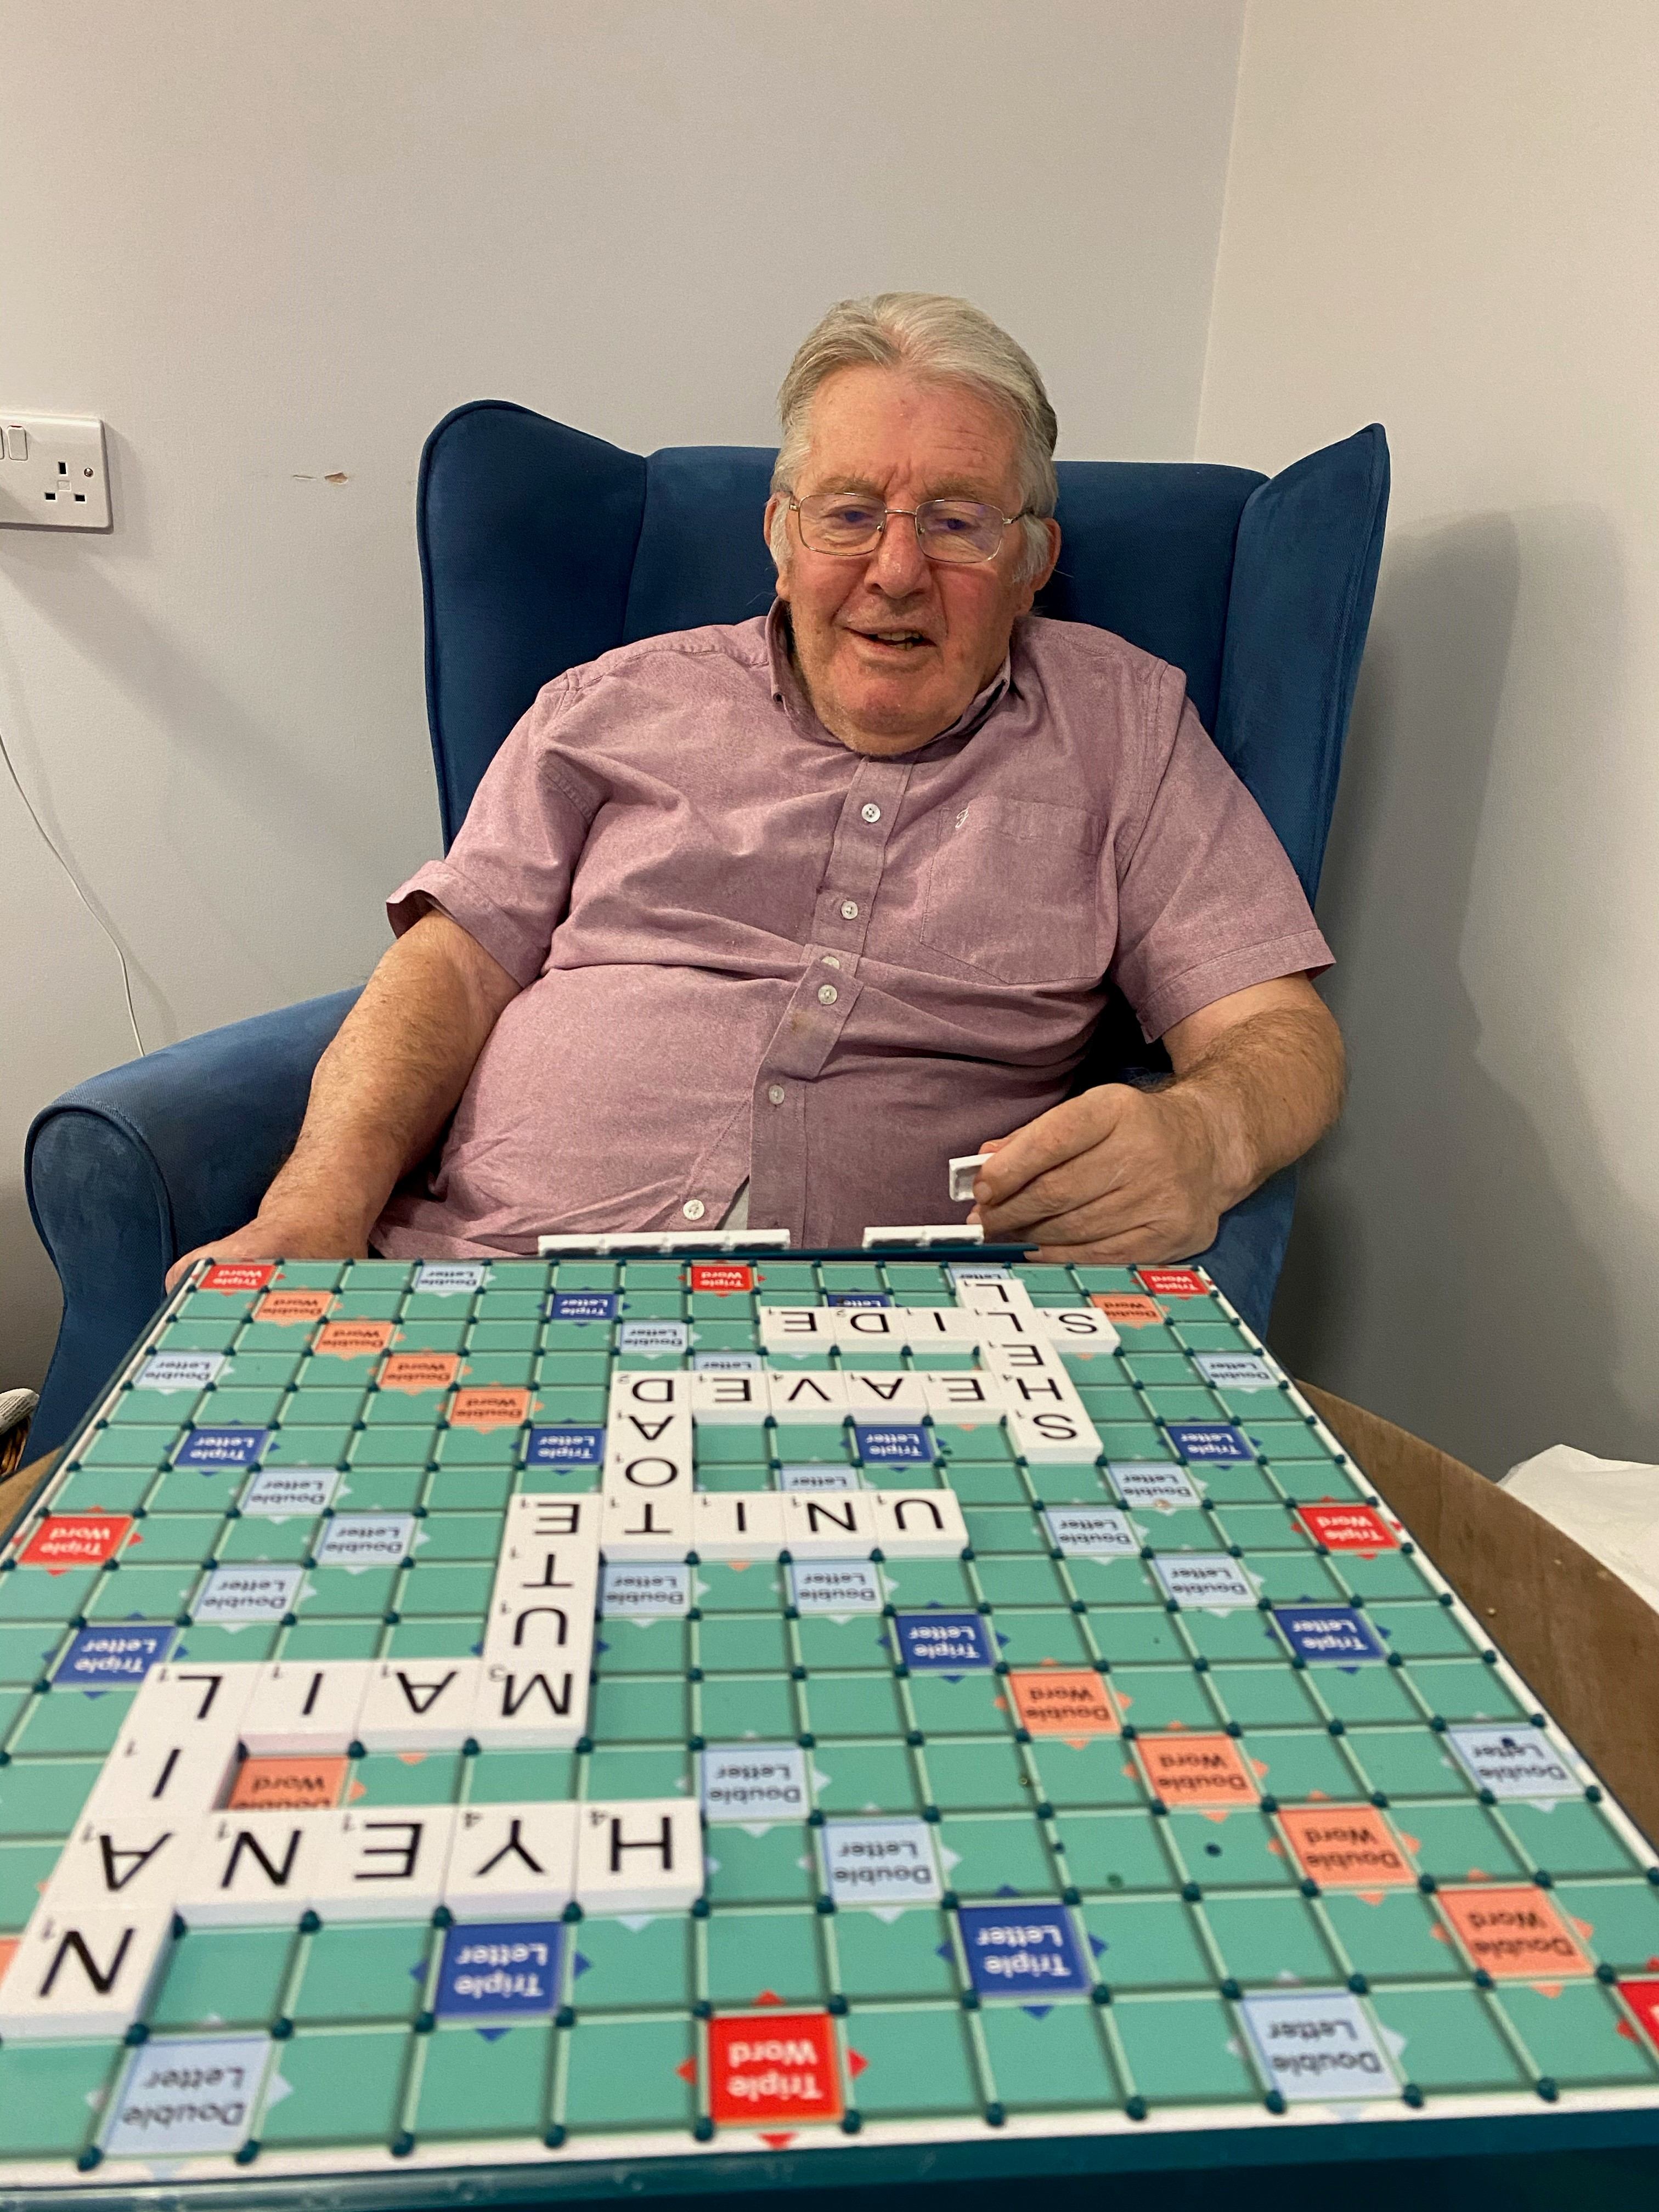 Phil playing scrabble (002)